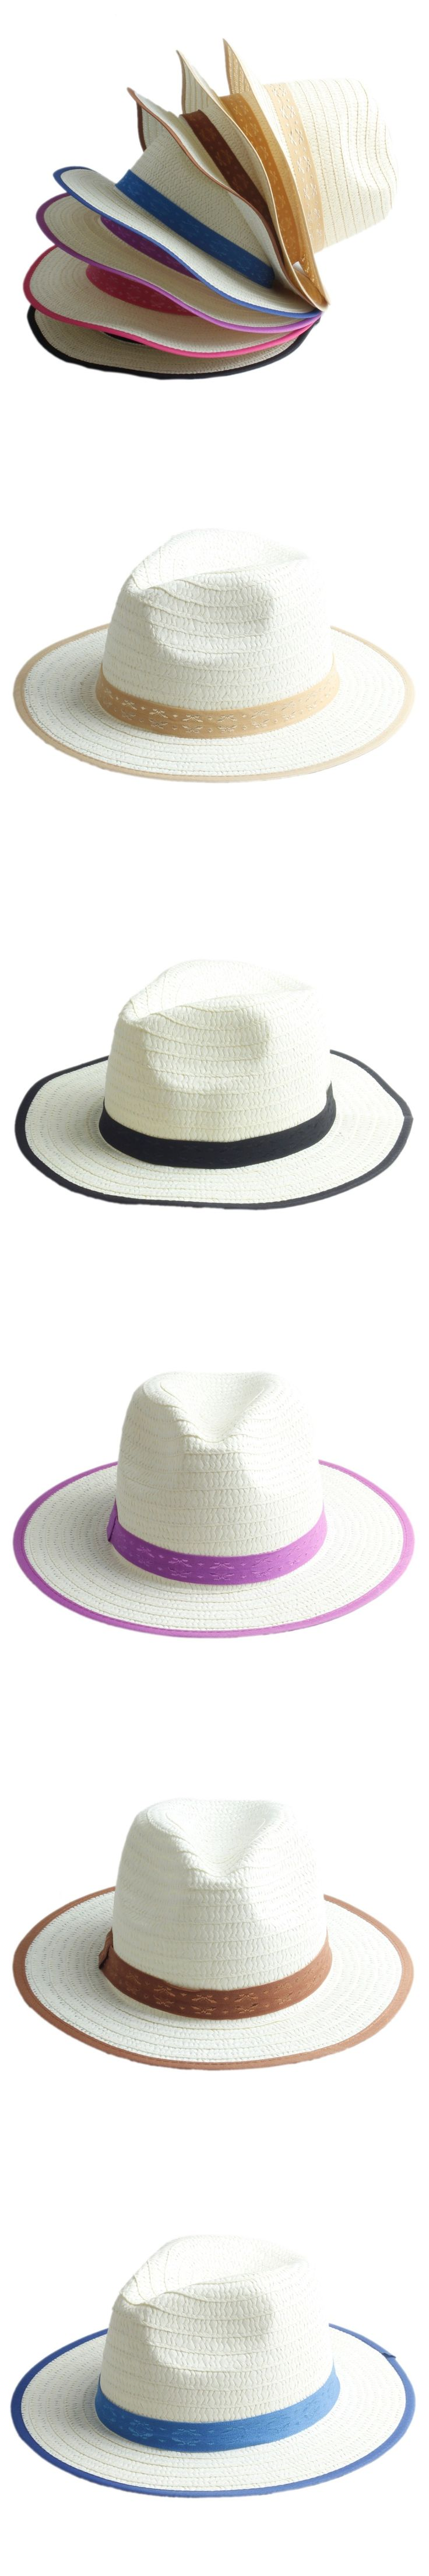 Fashion Summer Child Straw Fedora Hats Trilby Gangster Cap Boy girl wide Brim Sunhat Kids Beach hat Panama Hat Good Package 18